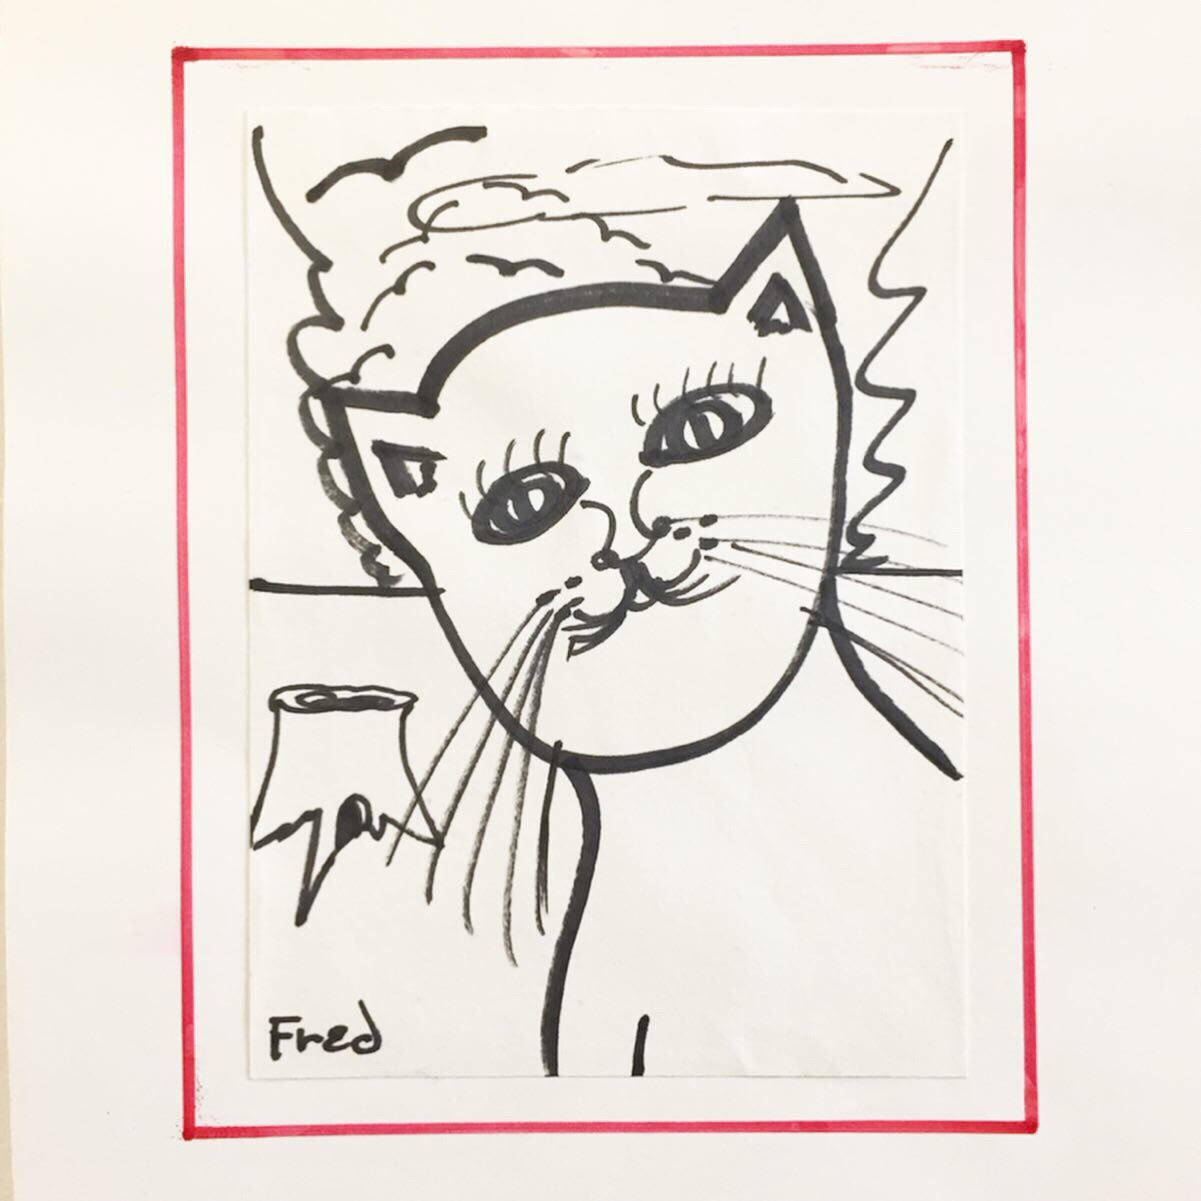 """Fred trask, 3 cat drawings - (Canadian 1946-), marker on paper adhered to heavier paper with hand drawn marker border. Each approx 7""""x5"""" (image). Unframed.Good condition with minor adhesion inconsistencies and markings on borders not affecting images.$275.00 for the set of 3SOLD"""